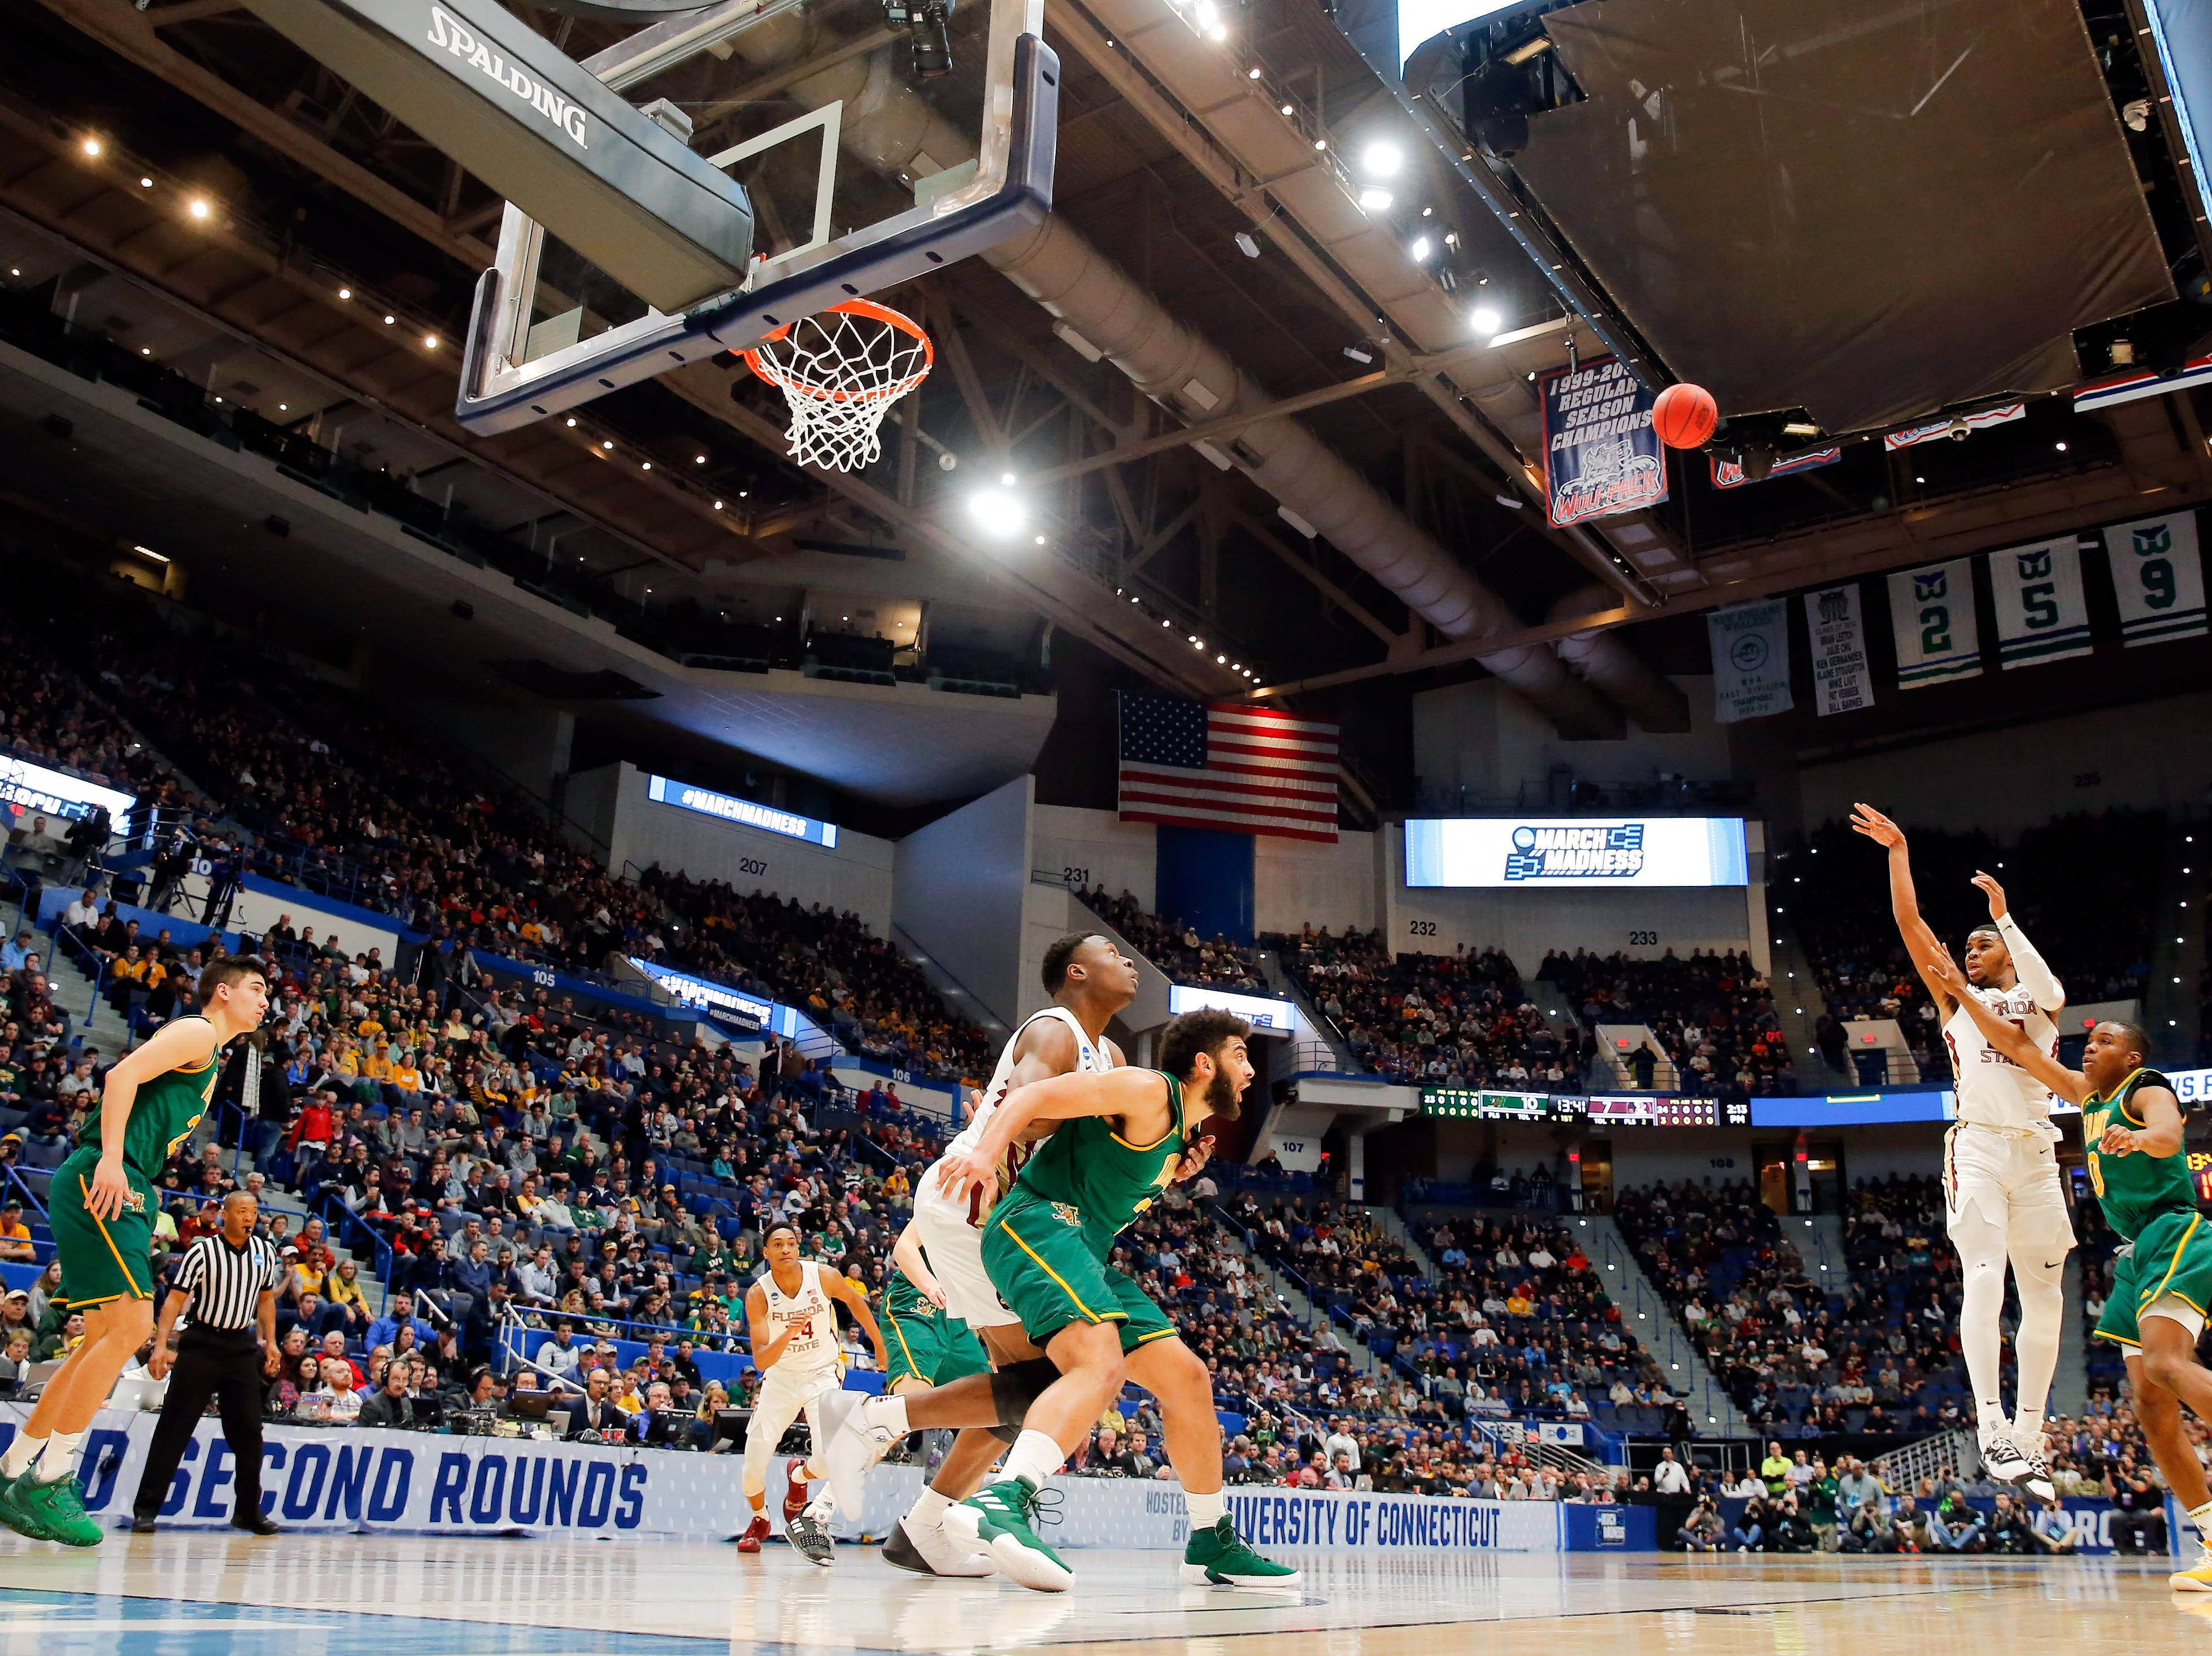 Mar 21, 2019; Hartford, CT, USA; Florida State Seminoles guard M.J. Walker (23) attempts a three point basket against the Vermont Catamounts during the first half of a game in the first round of the 2019 NCAA Tournament at XL Center. Mandatory Credit: David Butler II-USA TODAY Sports